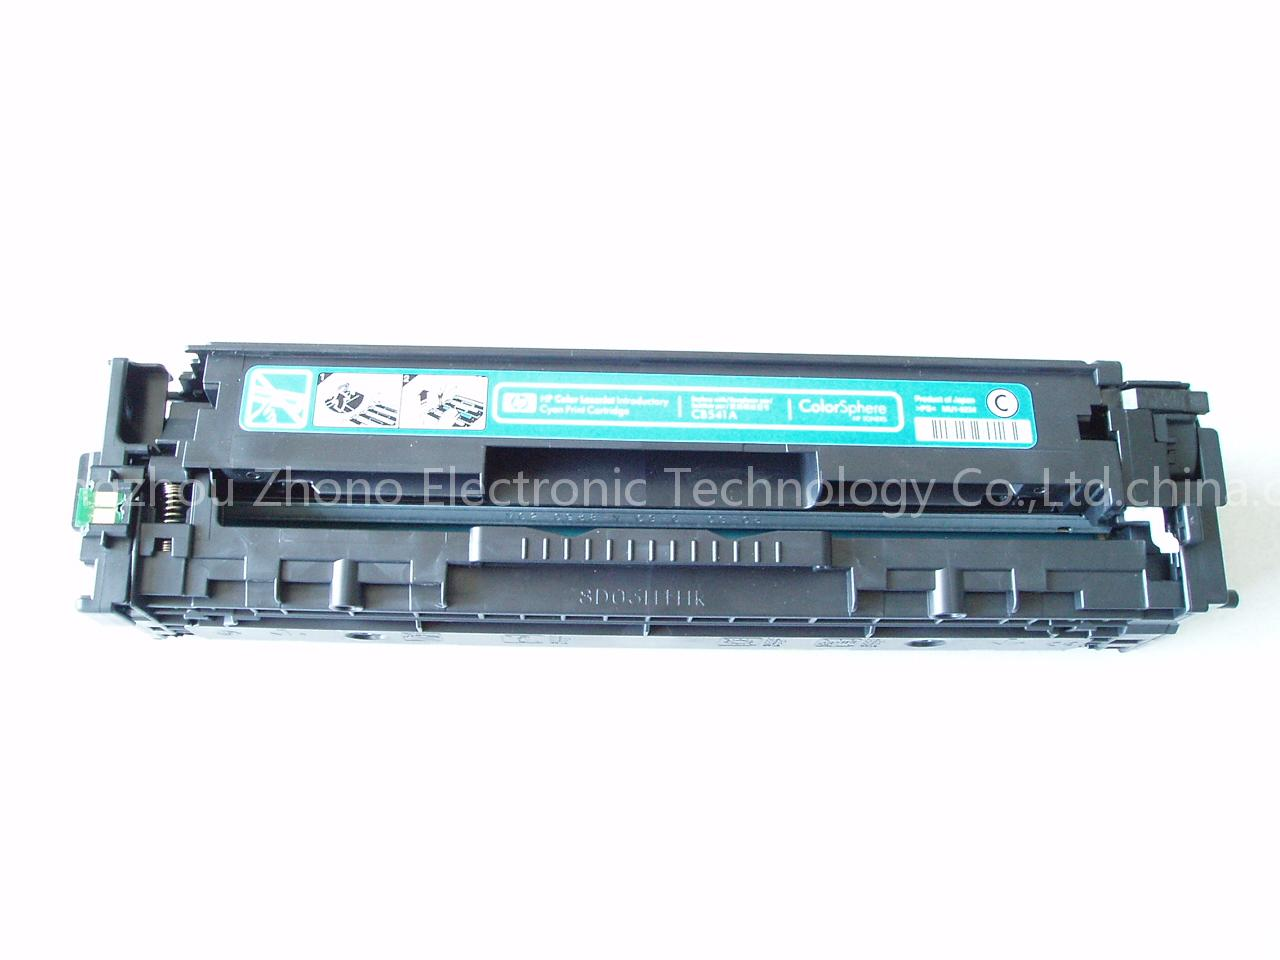 CANON LBP 5050 MF 8030 /8050 Dn Toner Cartridge MAGENTA NEW